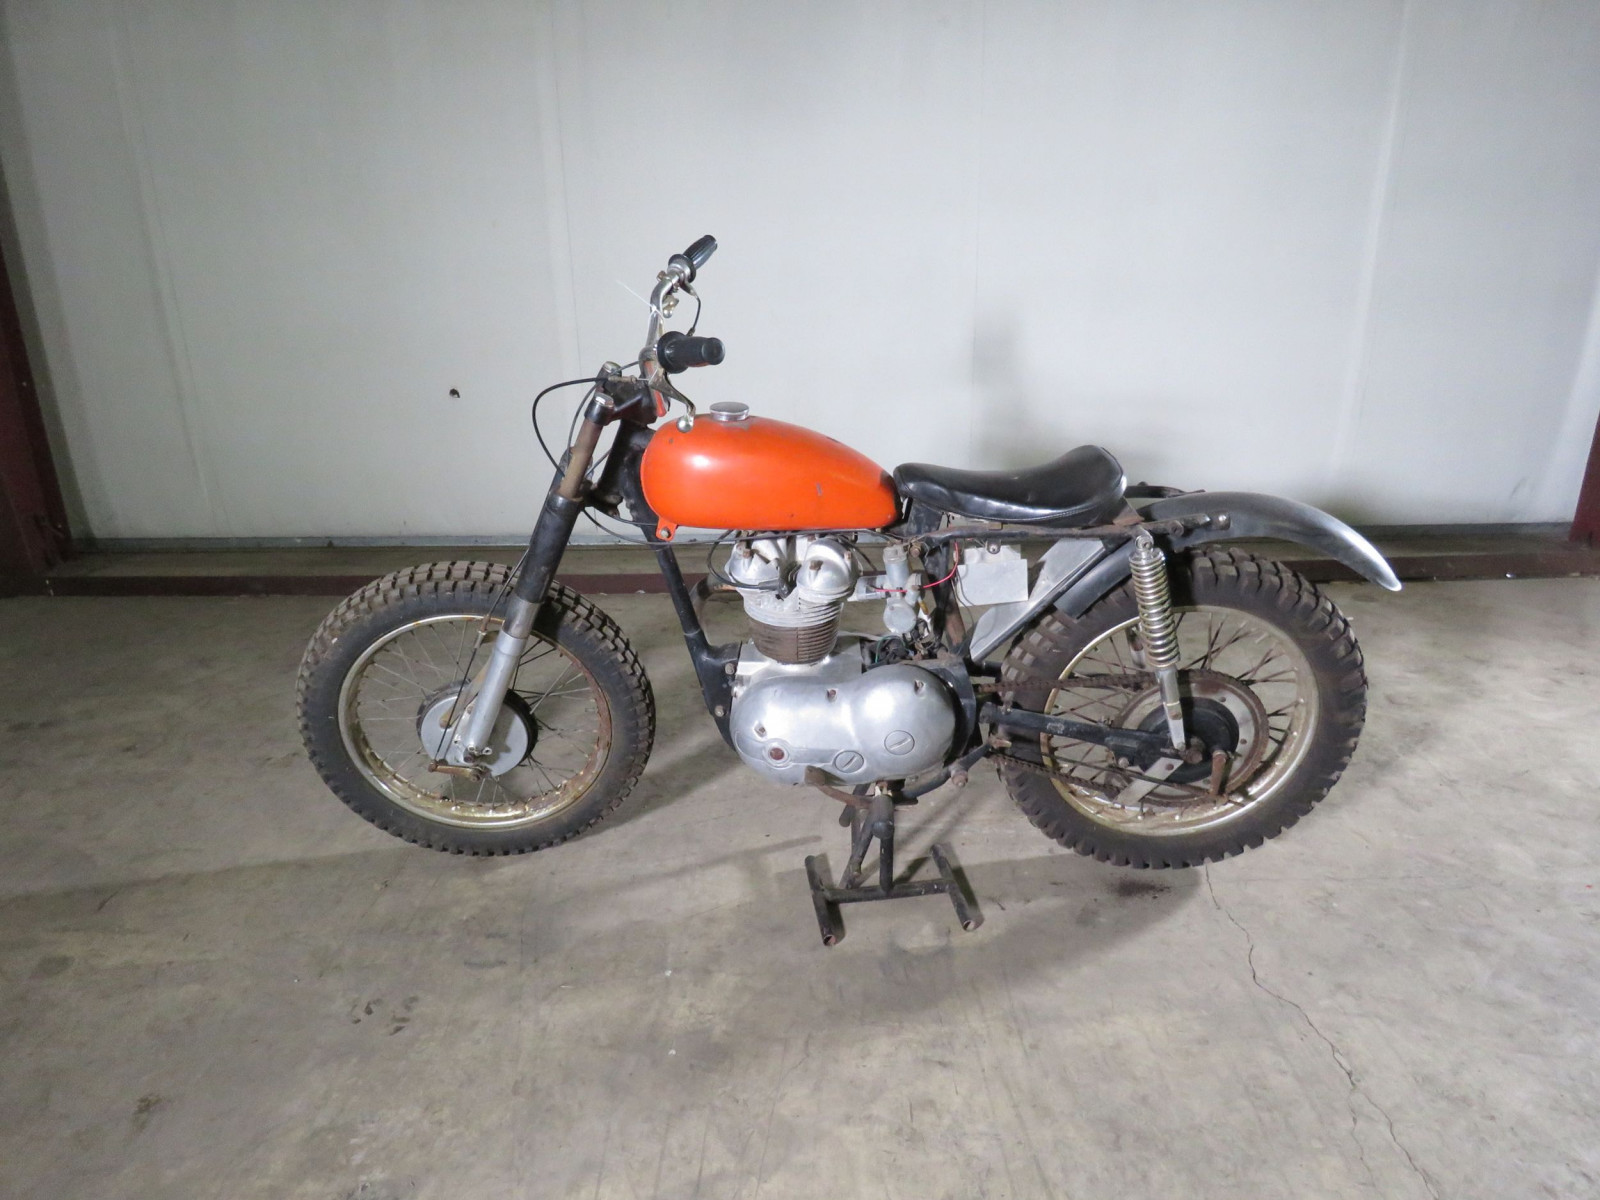 19625 Matchless G2 Motorcycle - Image 1